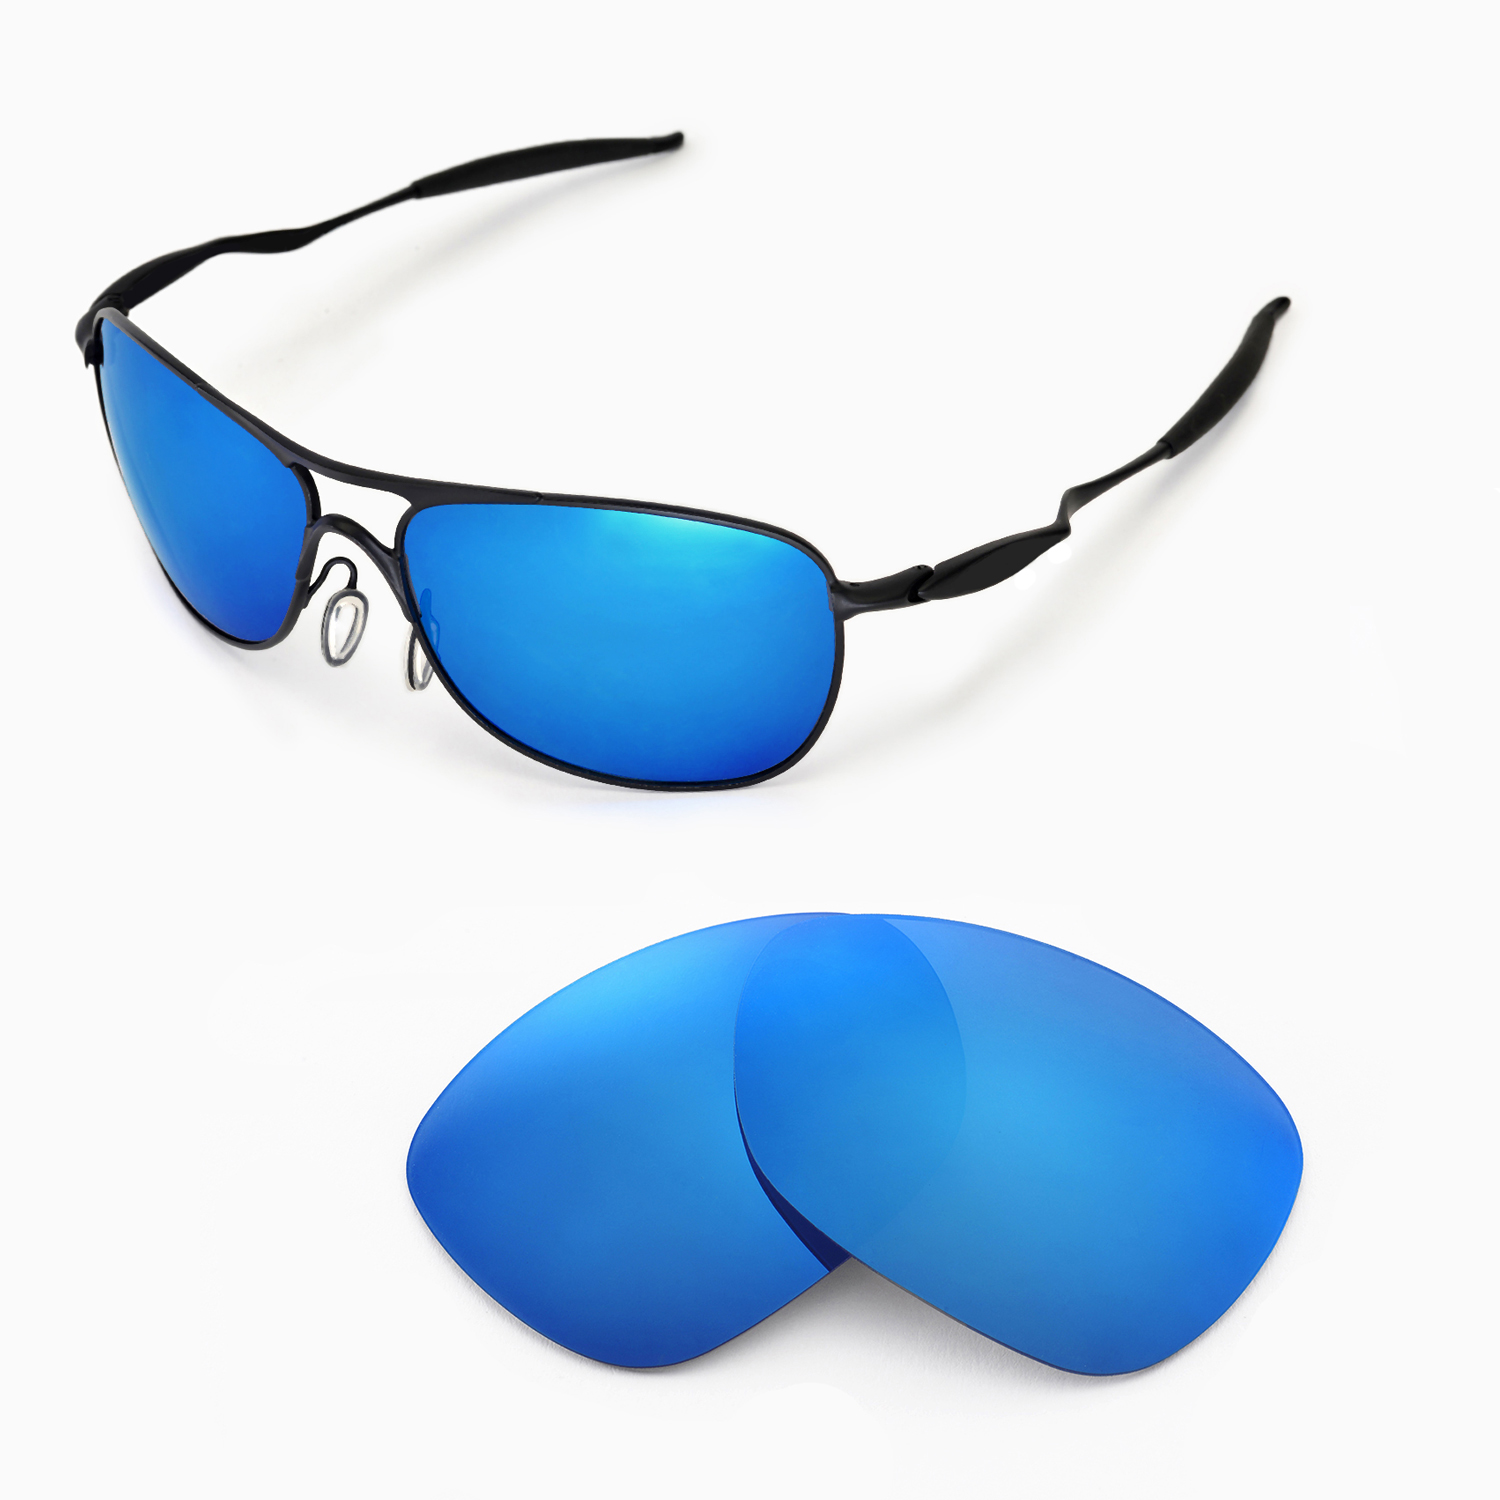 cf88fa441e Details about WL Polarized Ice Blue Replacement Lenses 4 Oakley New  Crosshair (2012 or later)